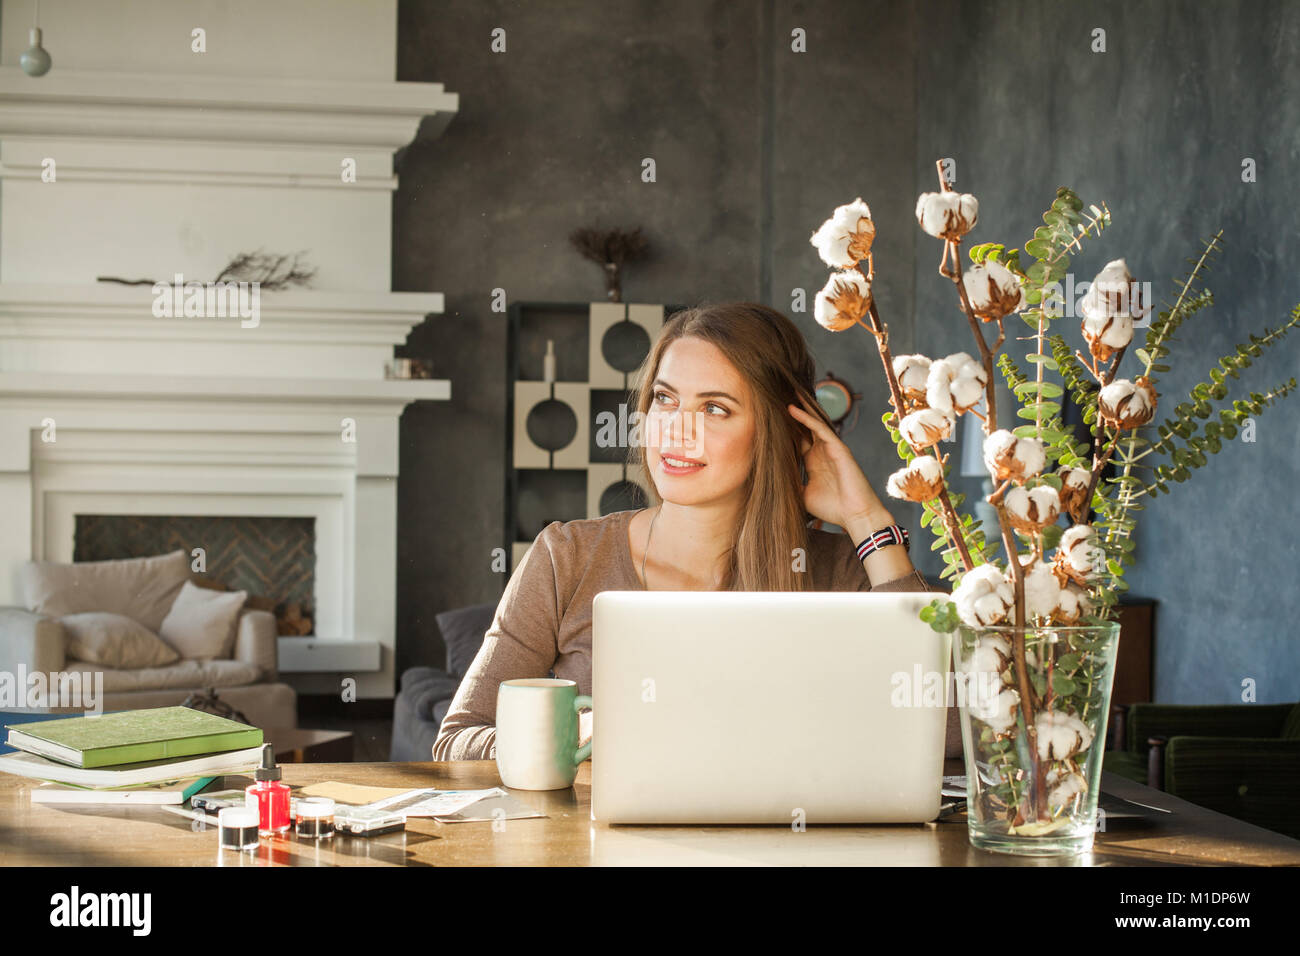 Portrait Of Happy Smiling Architect Or Designer Woman Sitting At Office And  Using Laptop